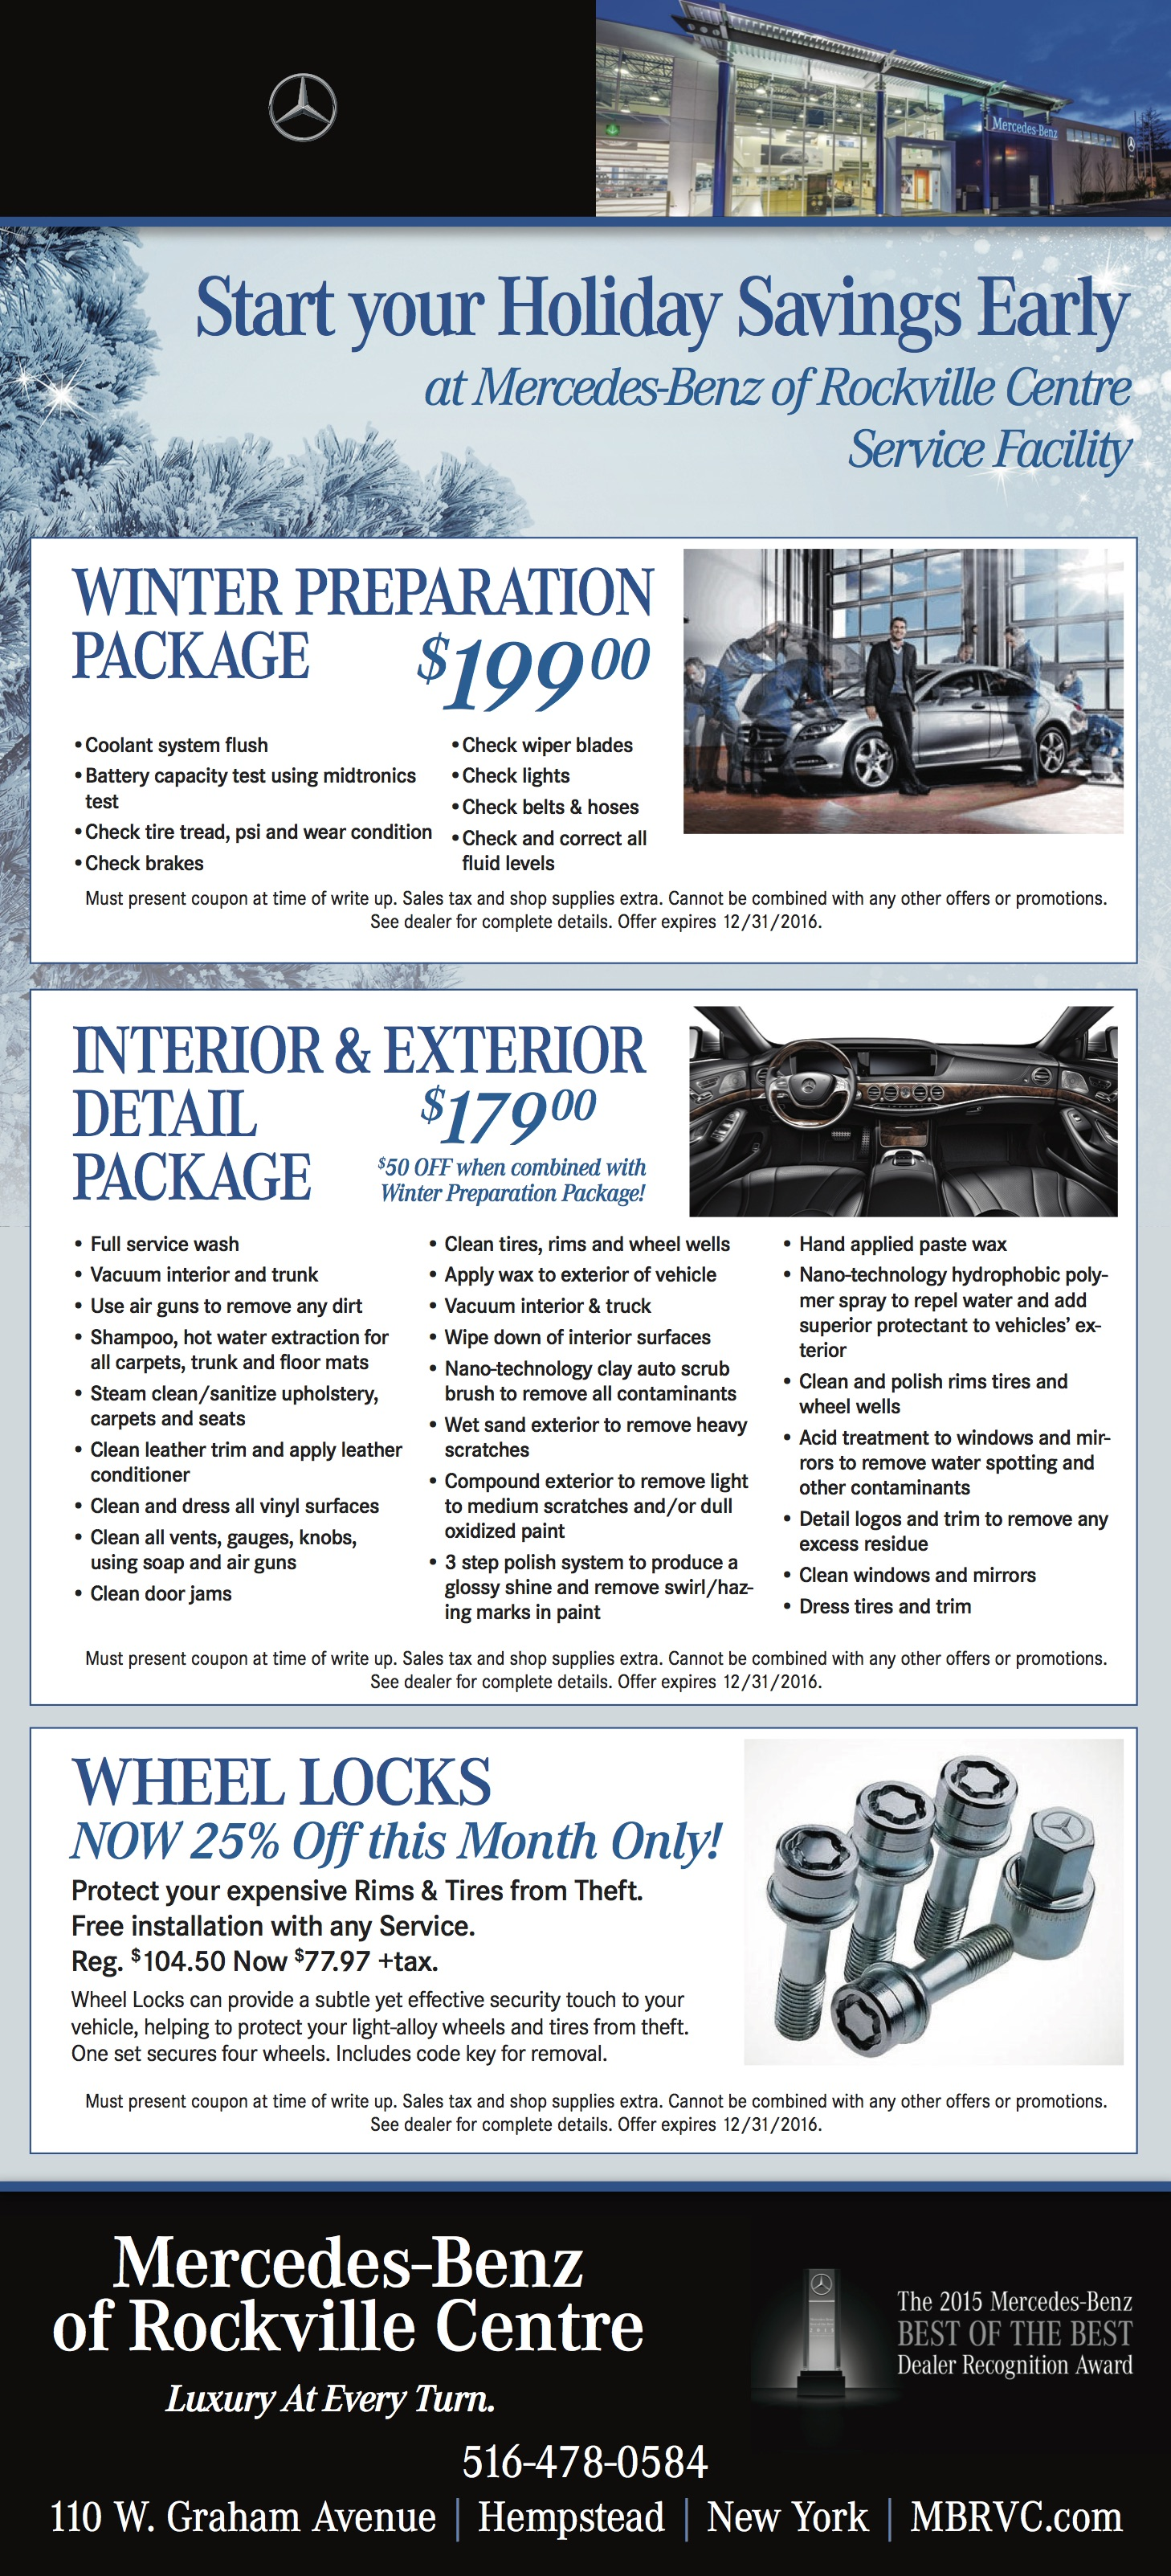 Holiday savings with mercedes benz of rockville centre for Mercedes benz service hempstead